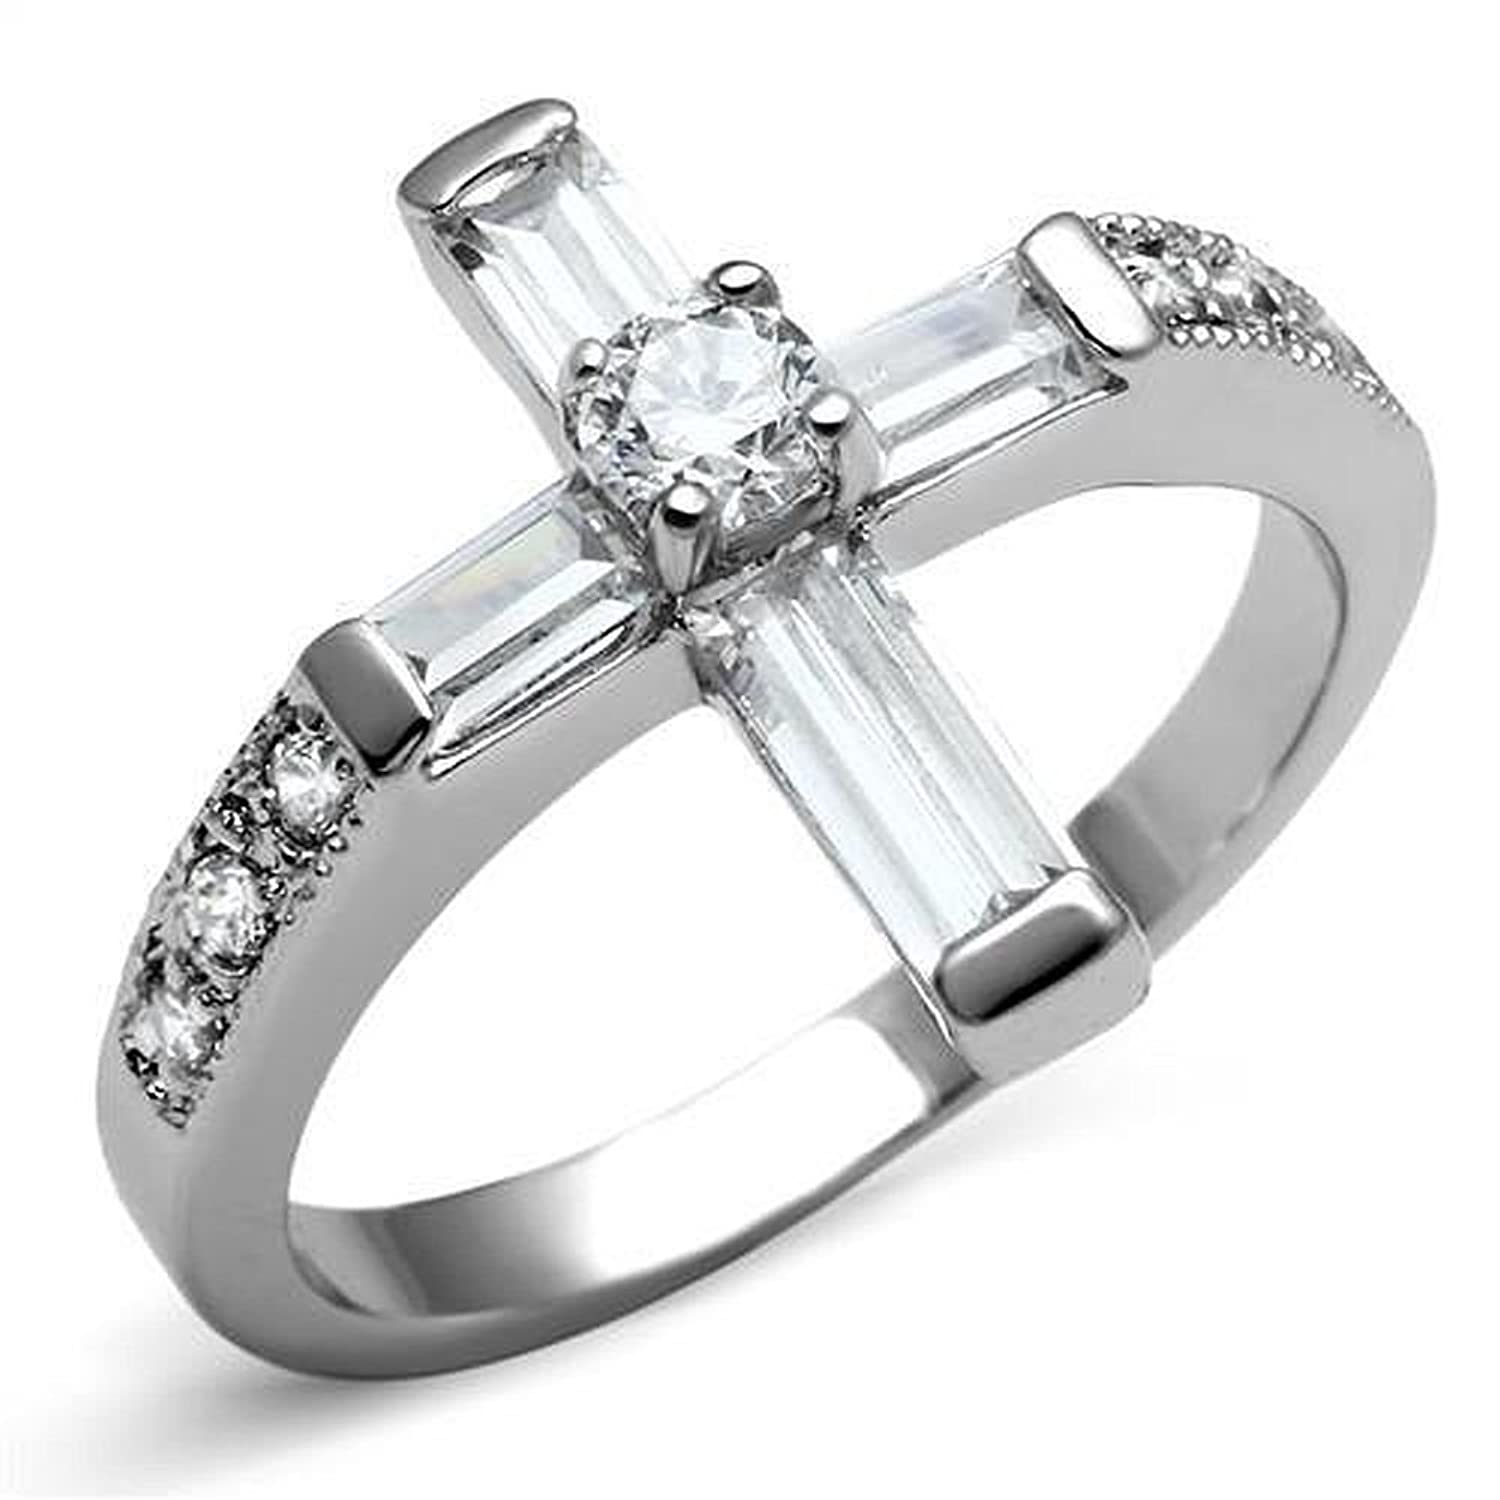 1.05ct Baguette & Round CZ Cubic Zirconia Stainless Steel Religious Christian Cross Ring